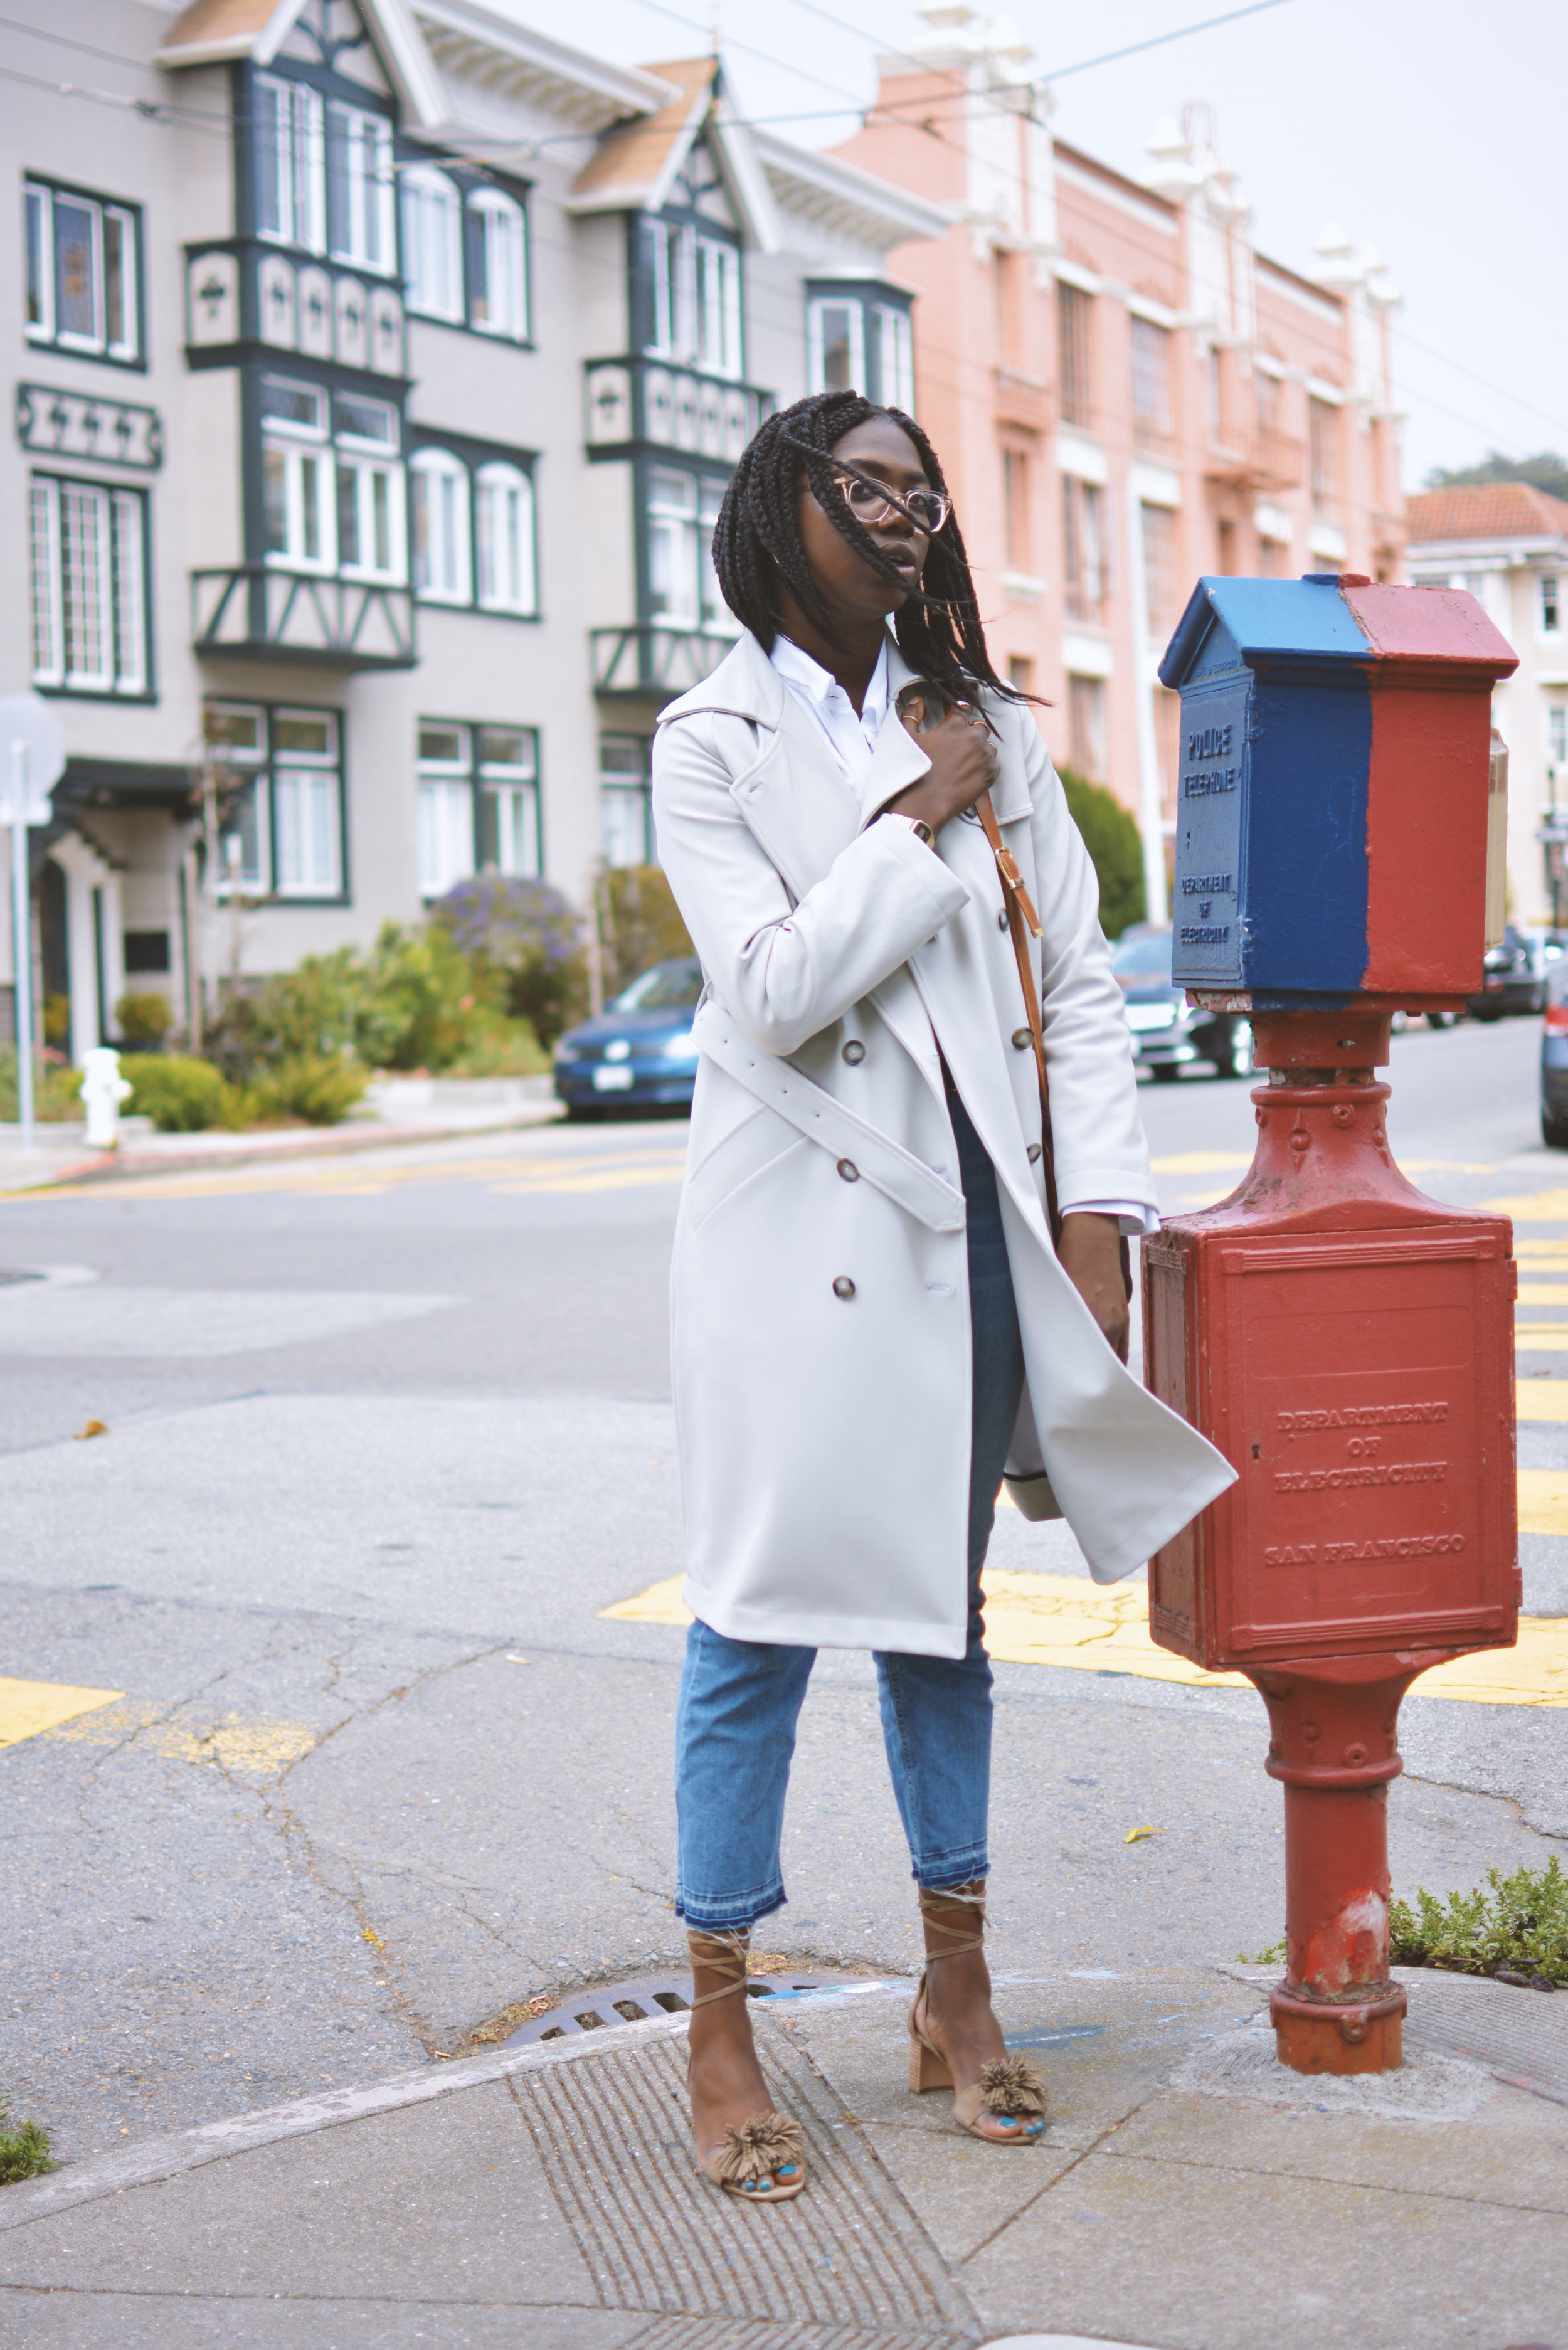 Technical Trench Coat - Click to shop here . . .